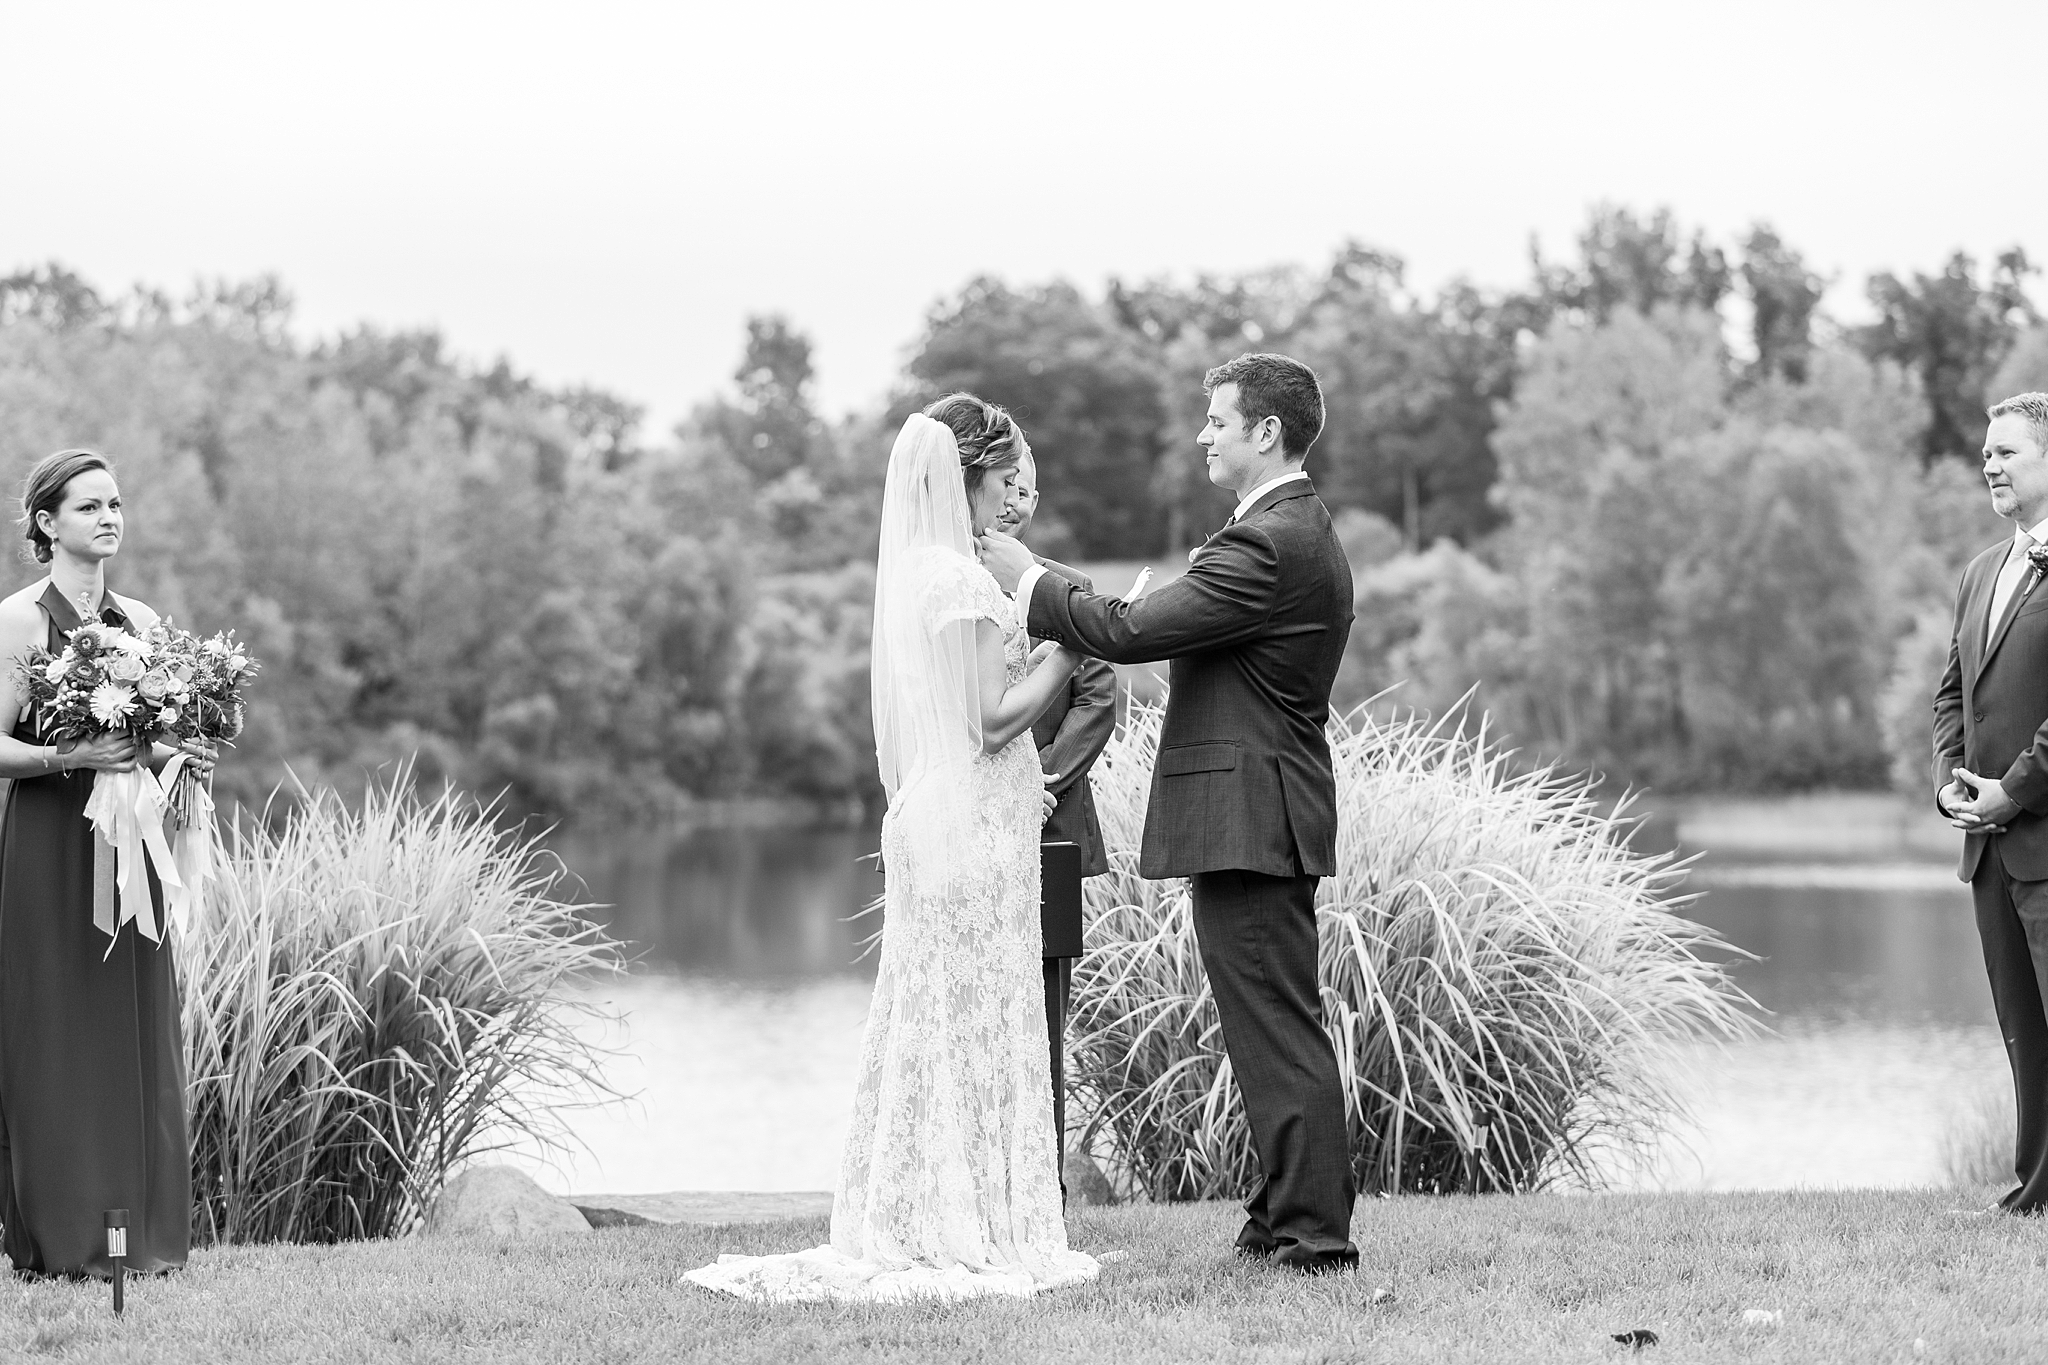 private-lakefront-estate-wedding-photography-in-ann-arbor-michigan-by-courtney-carolyn-photography_0024.jpg